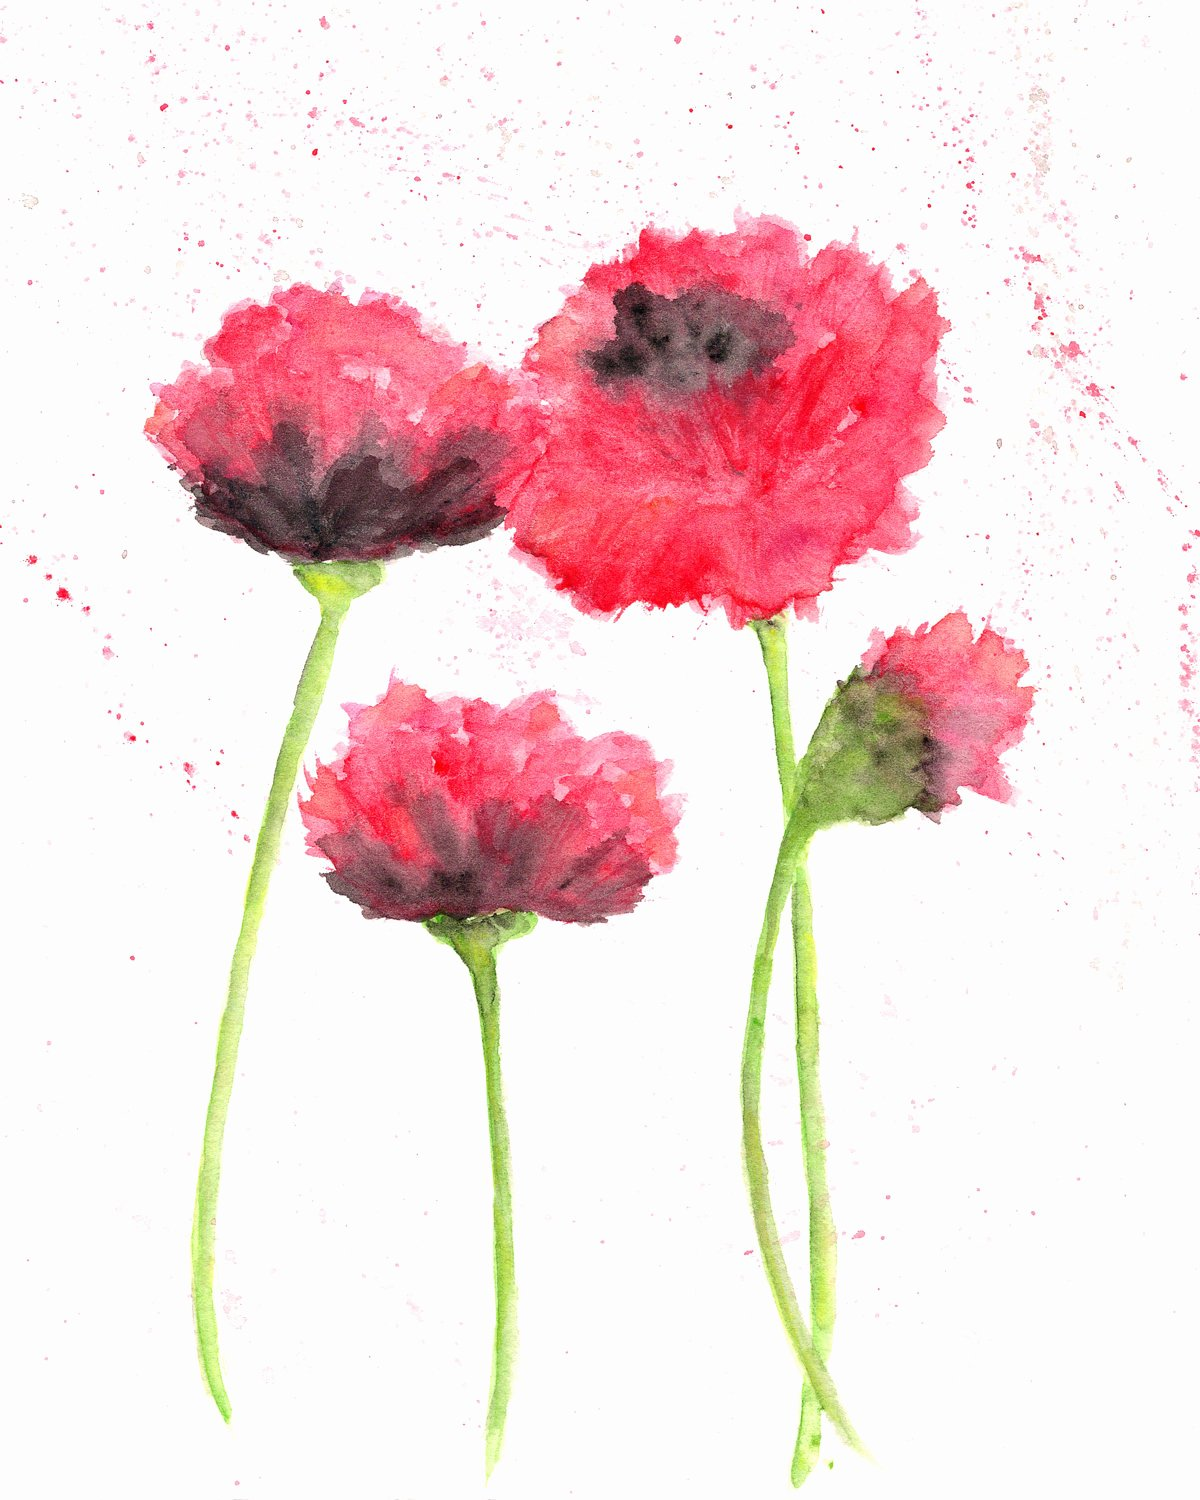 Abstract Paintings Of Flowers New Watercolor Flowers Flower Painting Watercolor Painting